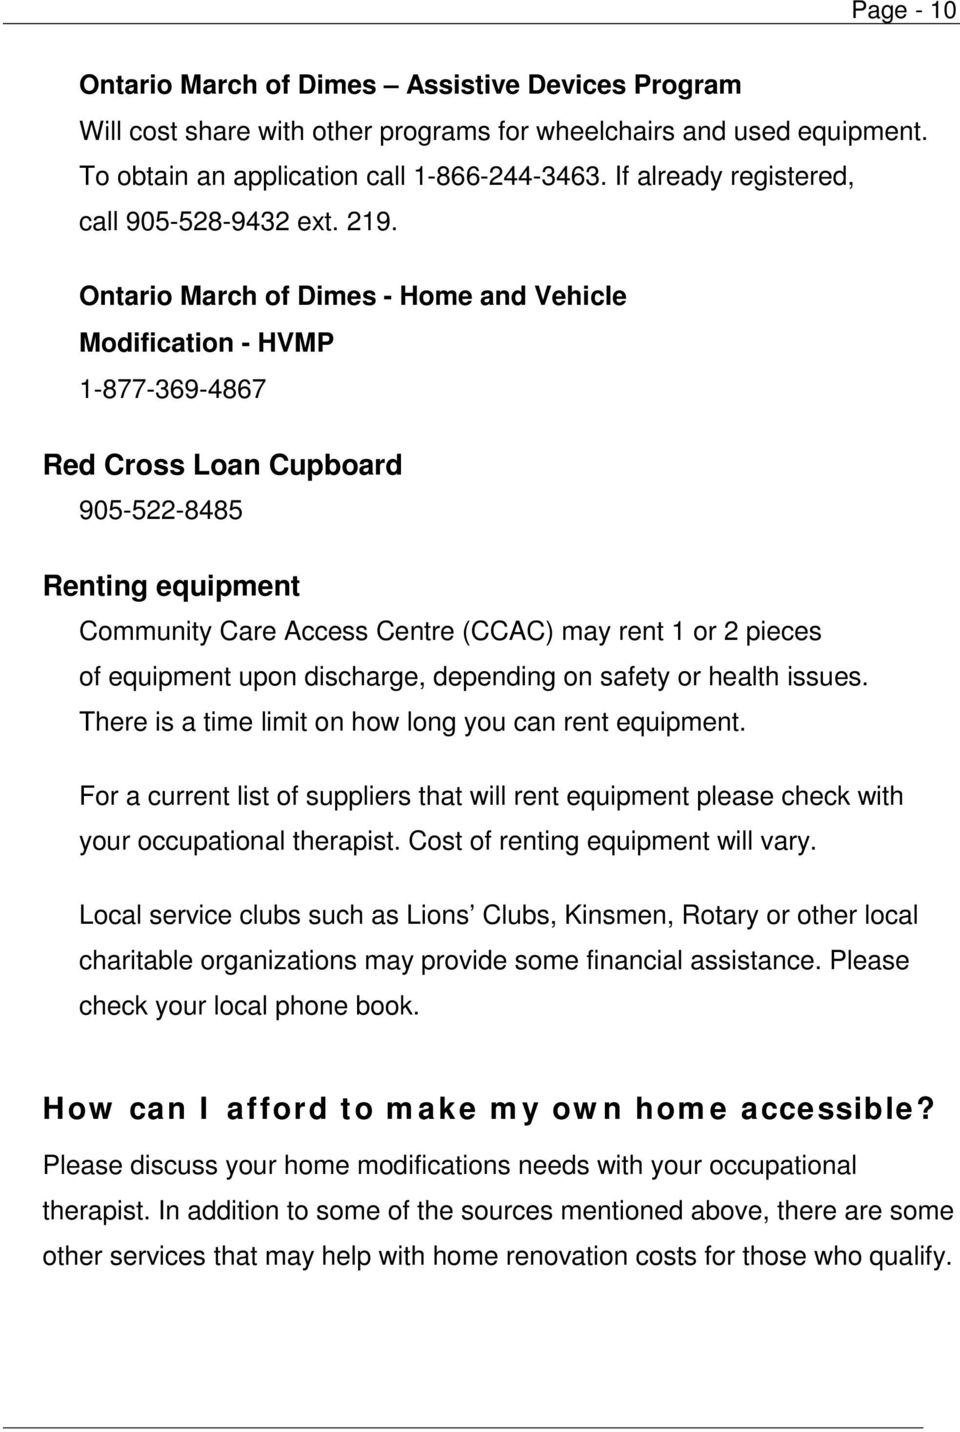 Ontario March of Dimes - Home and Vehicle Modification - HVMP 1-877-369-4867 Red Cross Loan Cupboard 905-522-8485 Renting equipment Community Care Access Centre (CCAC) may rent 1 or 2 pieces of